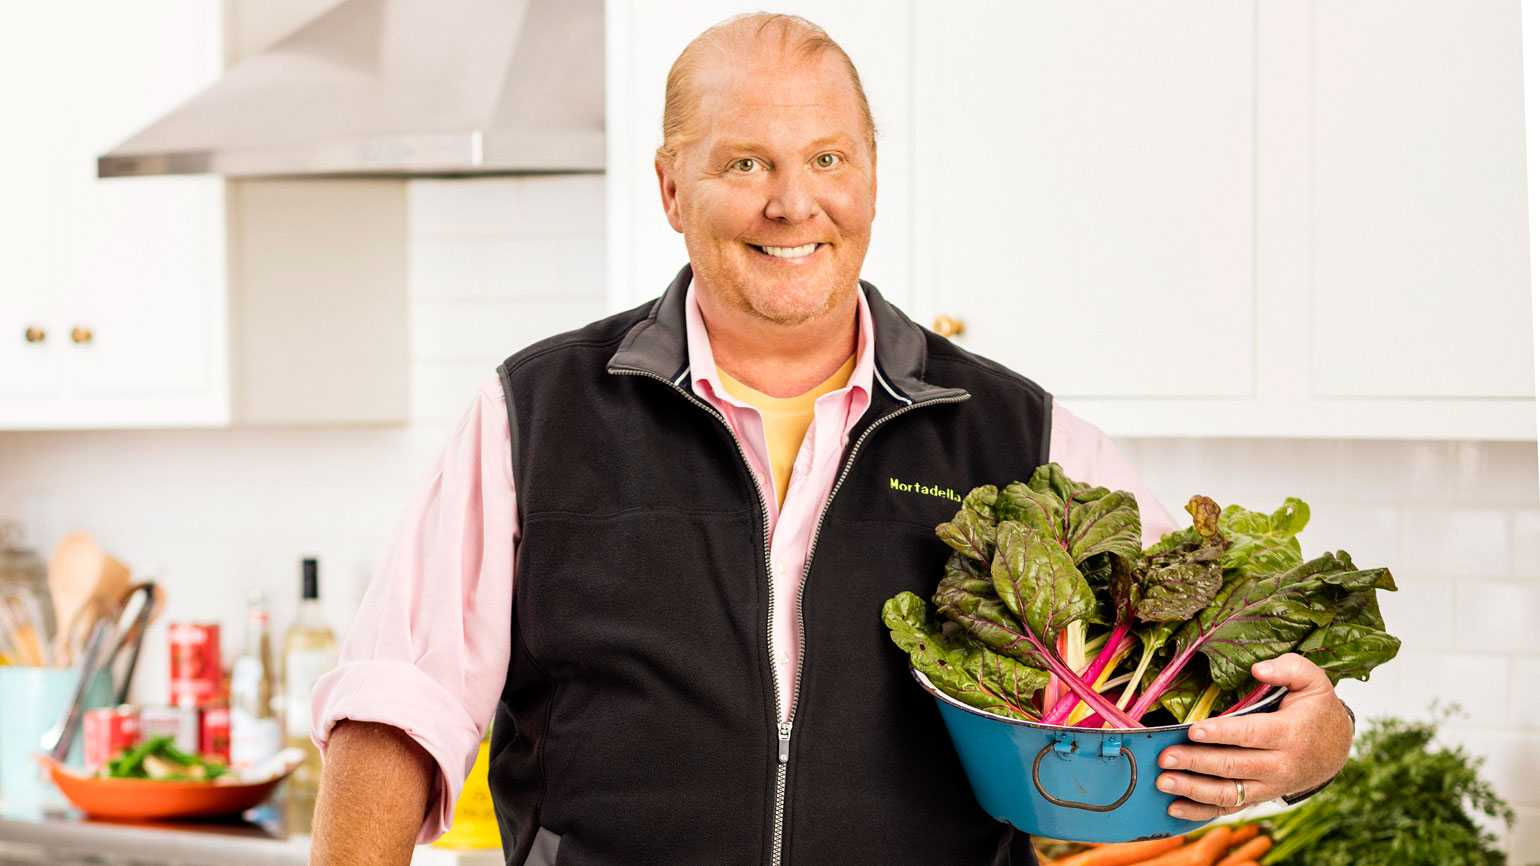 Celebrity chef Mario Batali poses with some of the ingredients that will go into his Thanksgiving dinner